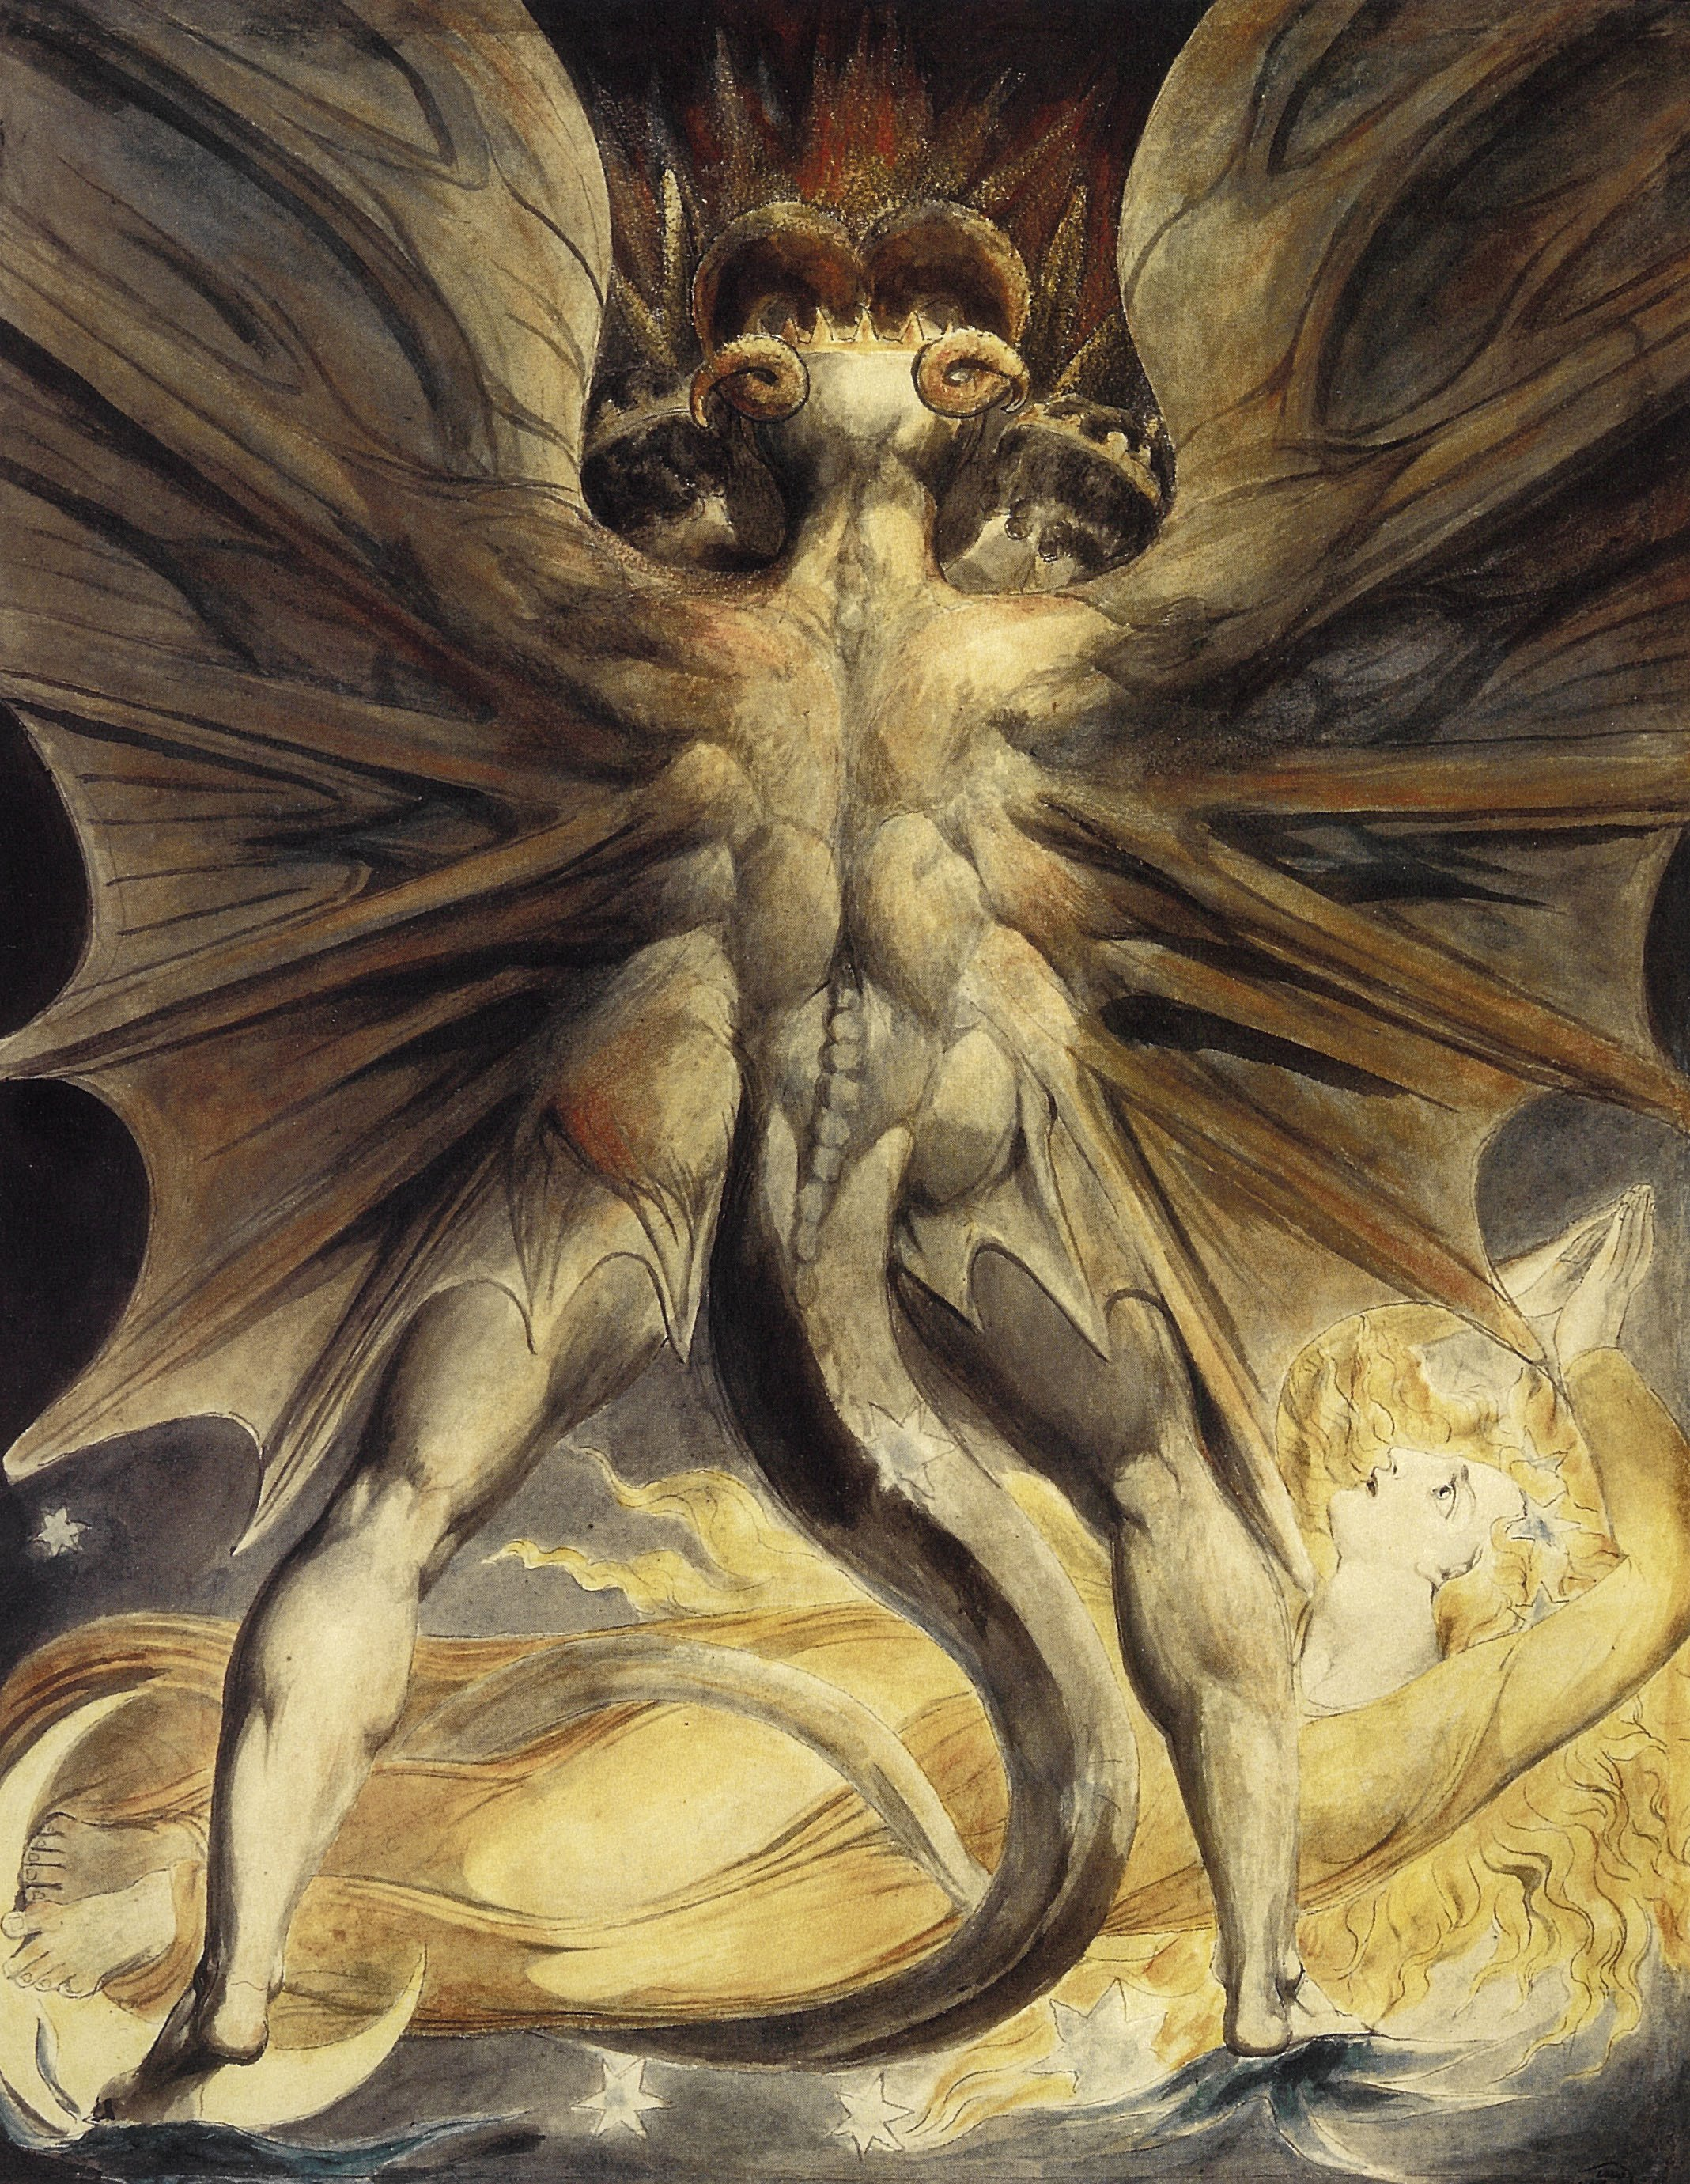 William Blake,  The Red Dragon and the Woman Clothed in Sun  (1803).